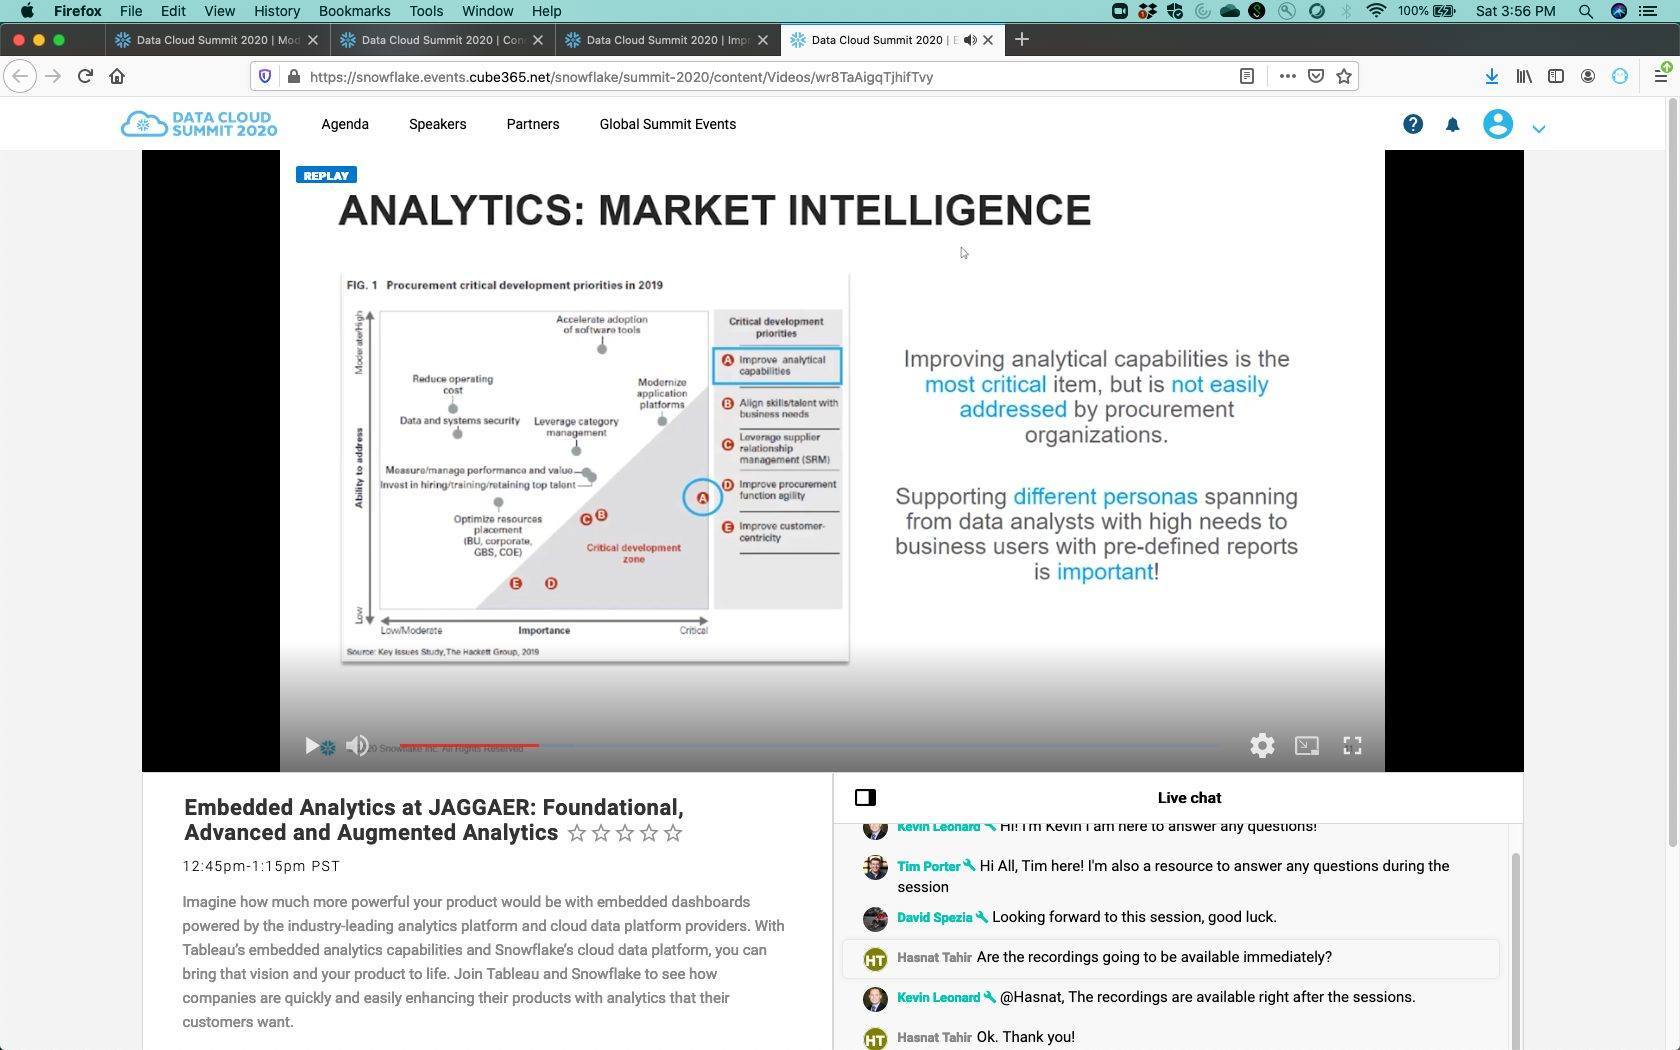 Jaegger Embedded Analytics